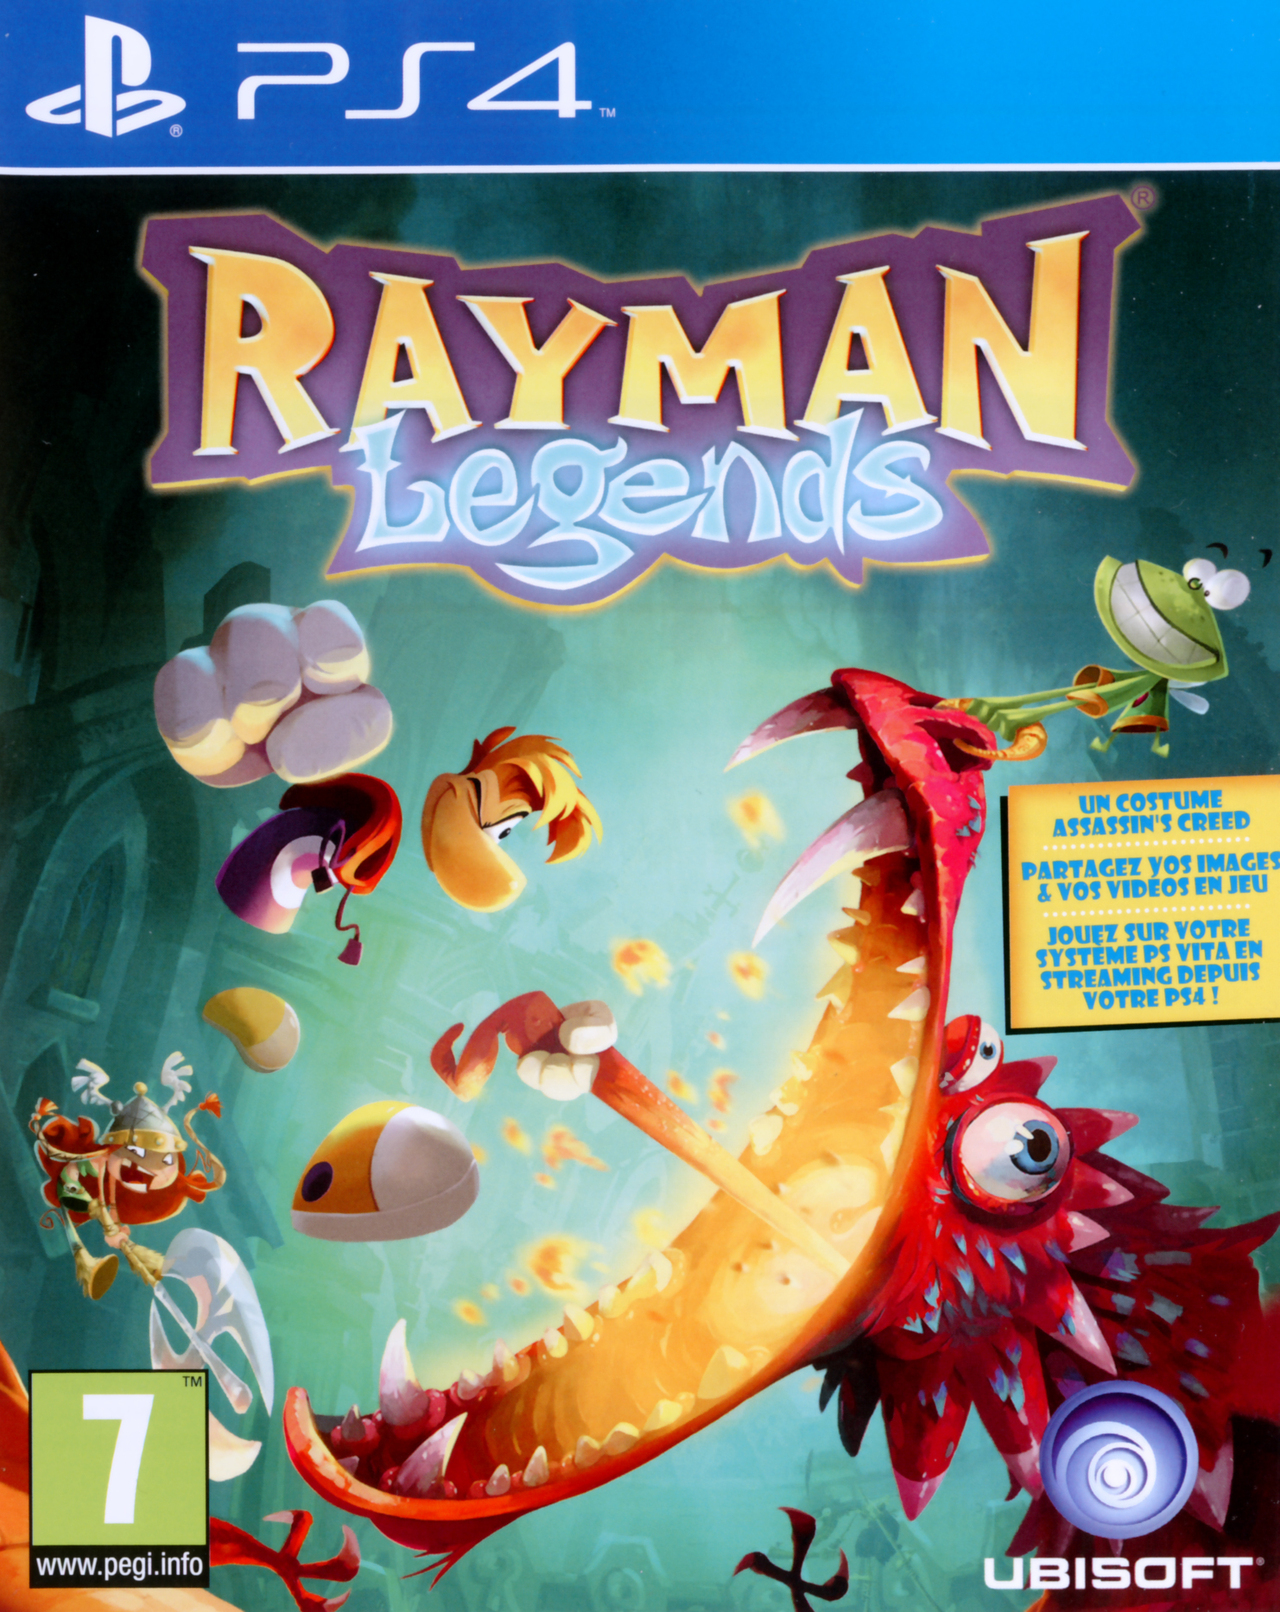 rayman legends sur playstation 4. Black Bedroom Furniture Sets. Home Design Ideas